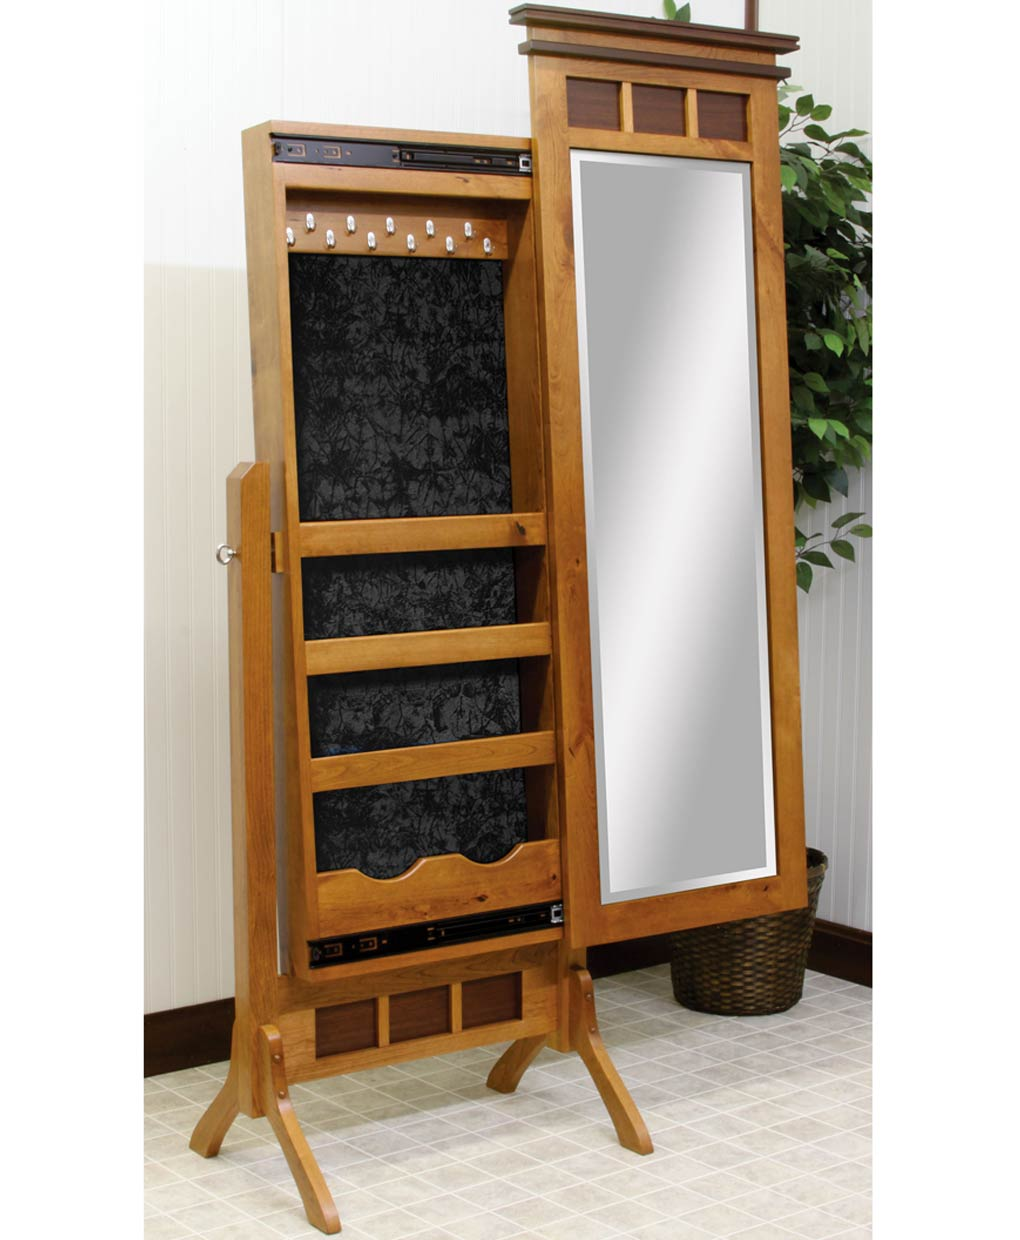 Maple creek jewelry cheval amish direct furniture for Bedroom 80 humidity